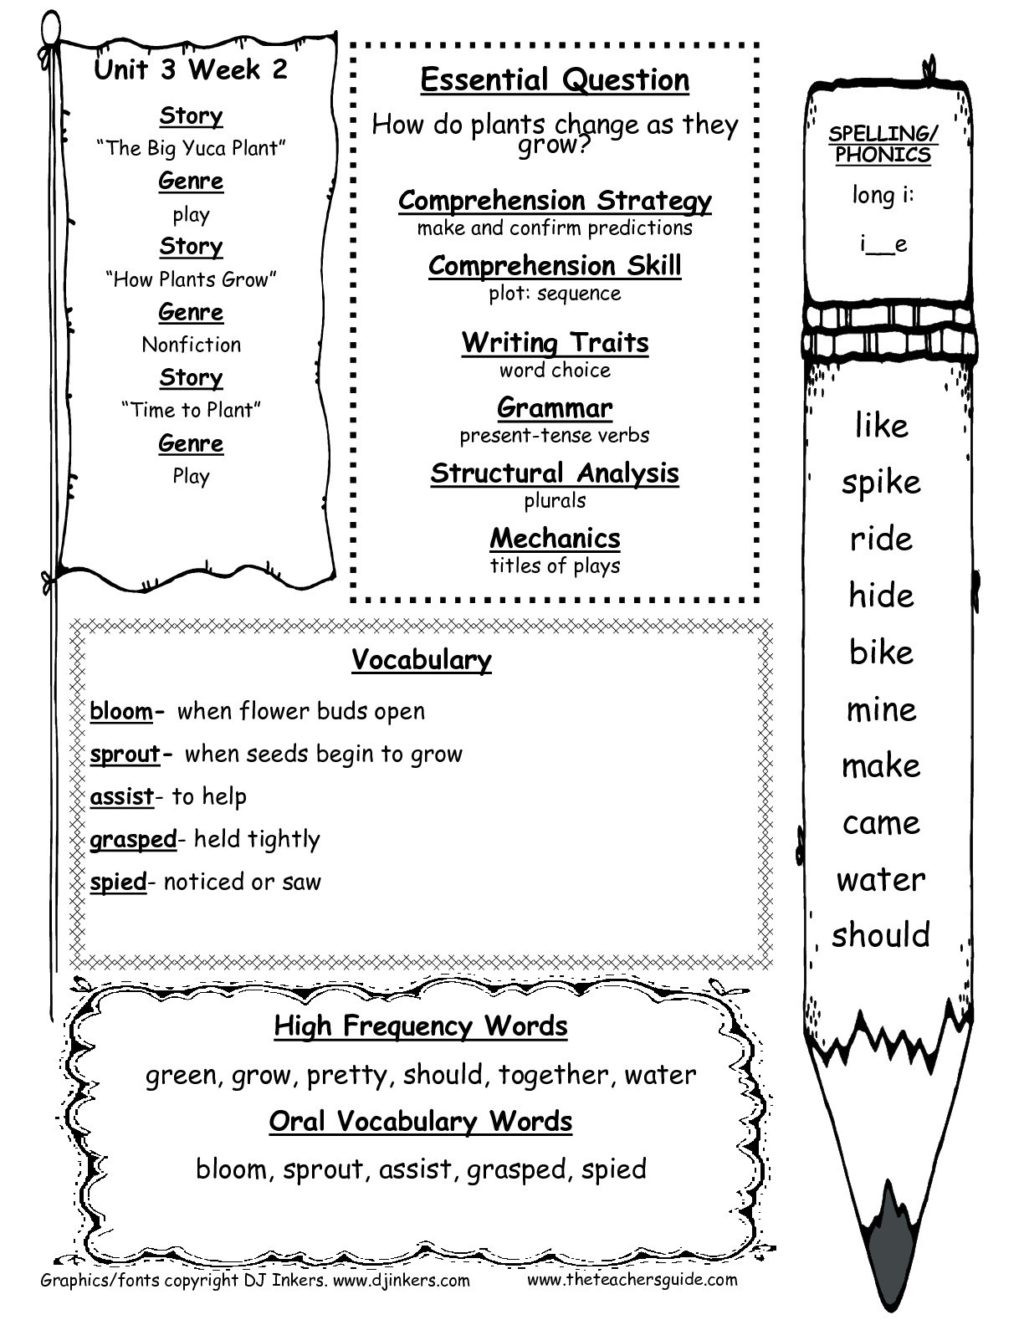 Sequence Worksheets 2nd Grade Worksheet Spellingords for 1st Grade Image Ideasorksheets